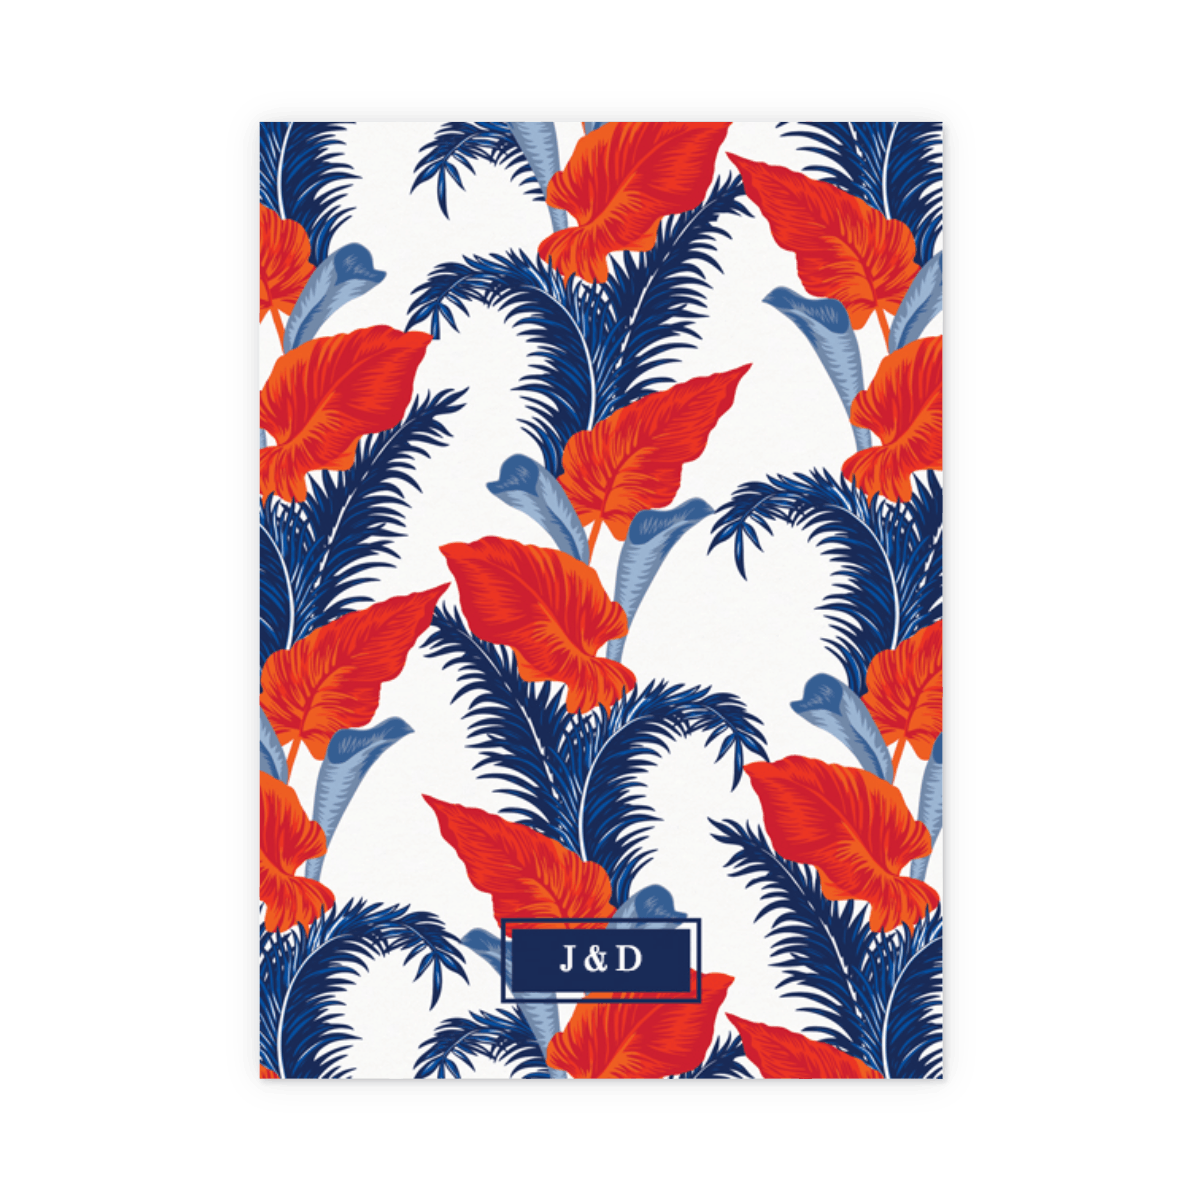 Https%3a%2f%2fwww.papier.com%2fproduct image%2f39599%2f4%2fred blue palms 9767 back 1530179643.png?ixlib=rb 1.1